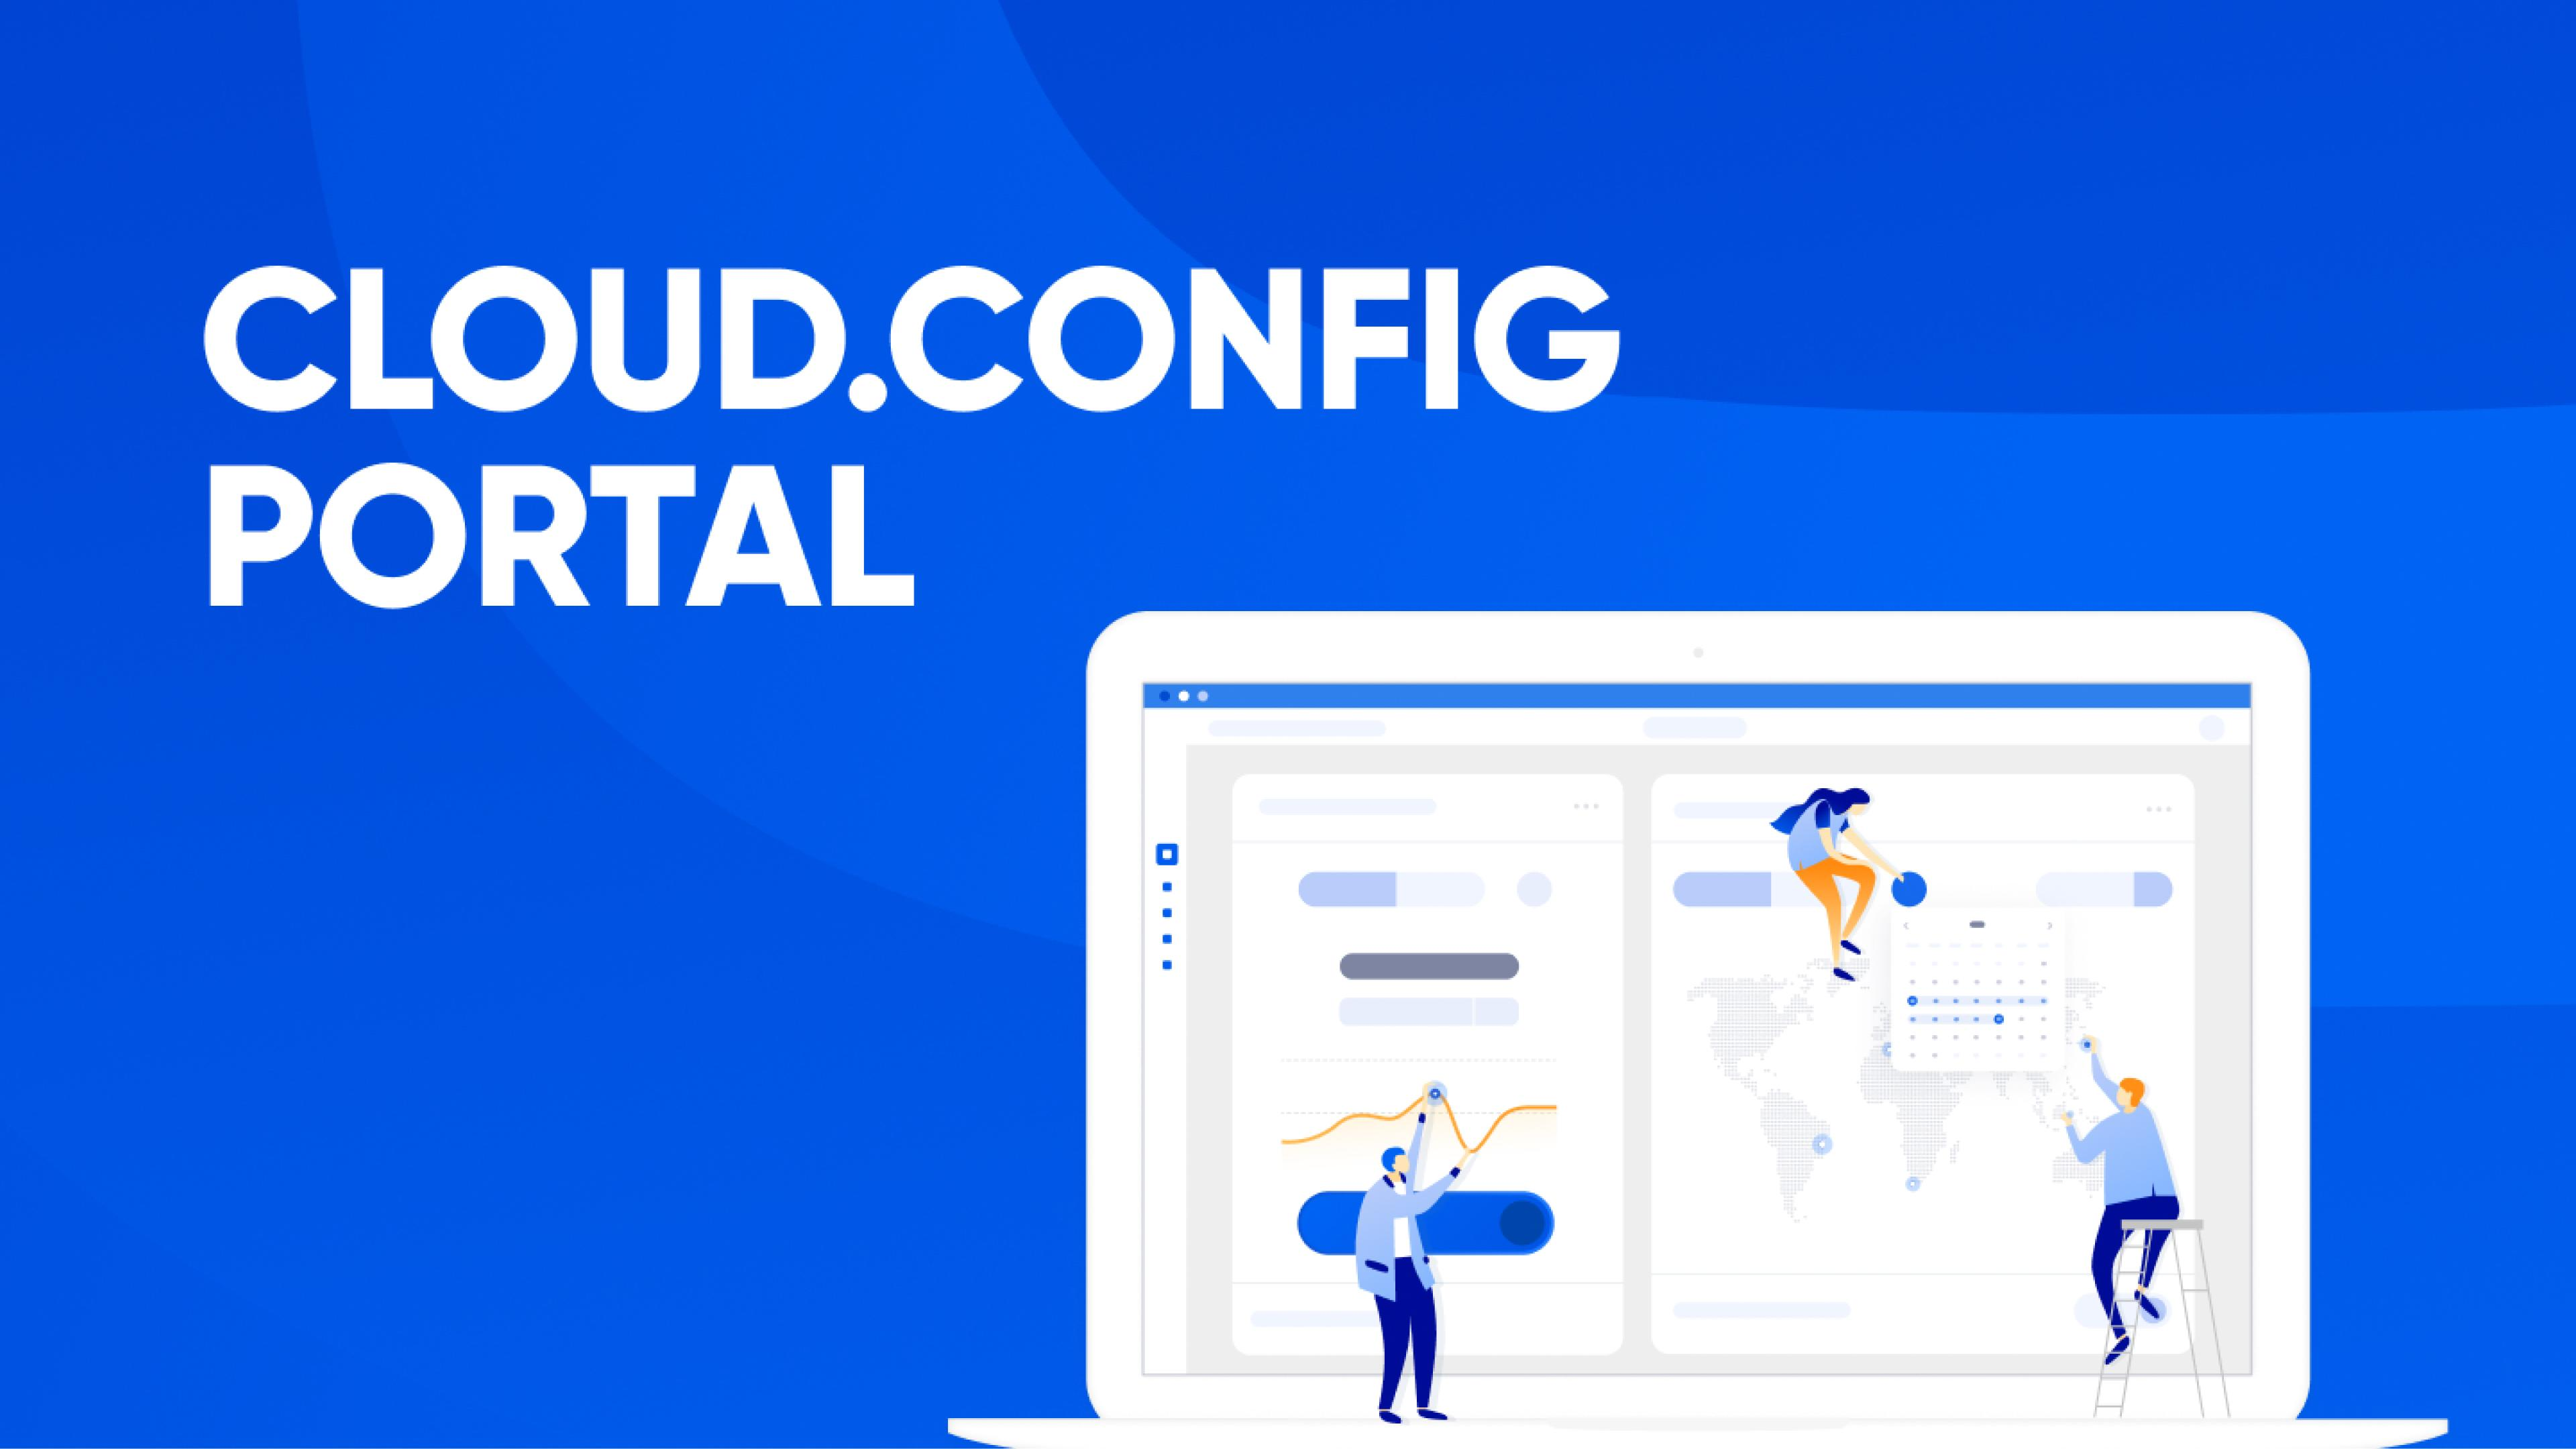 2019_0315_001_pressrelease_cloudconfig_portal_for_csps_is_officially_released001.jpg.jpg